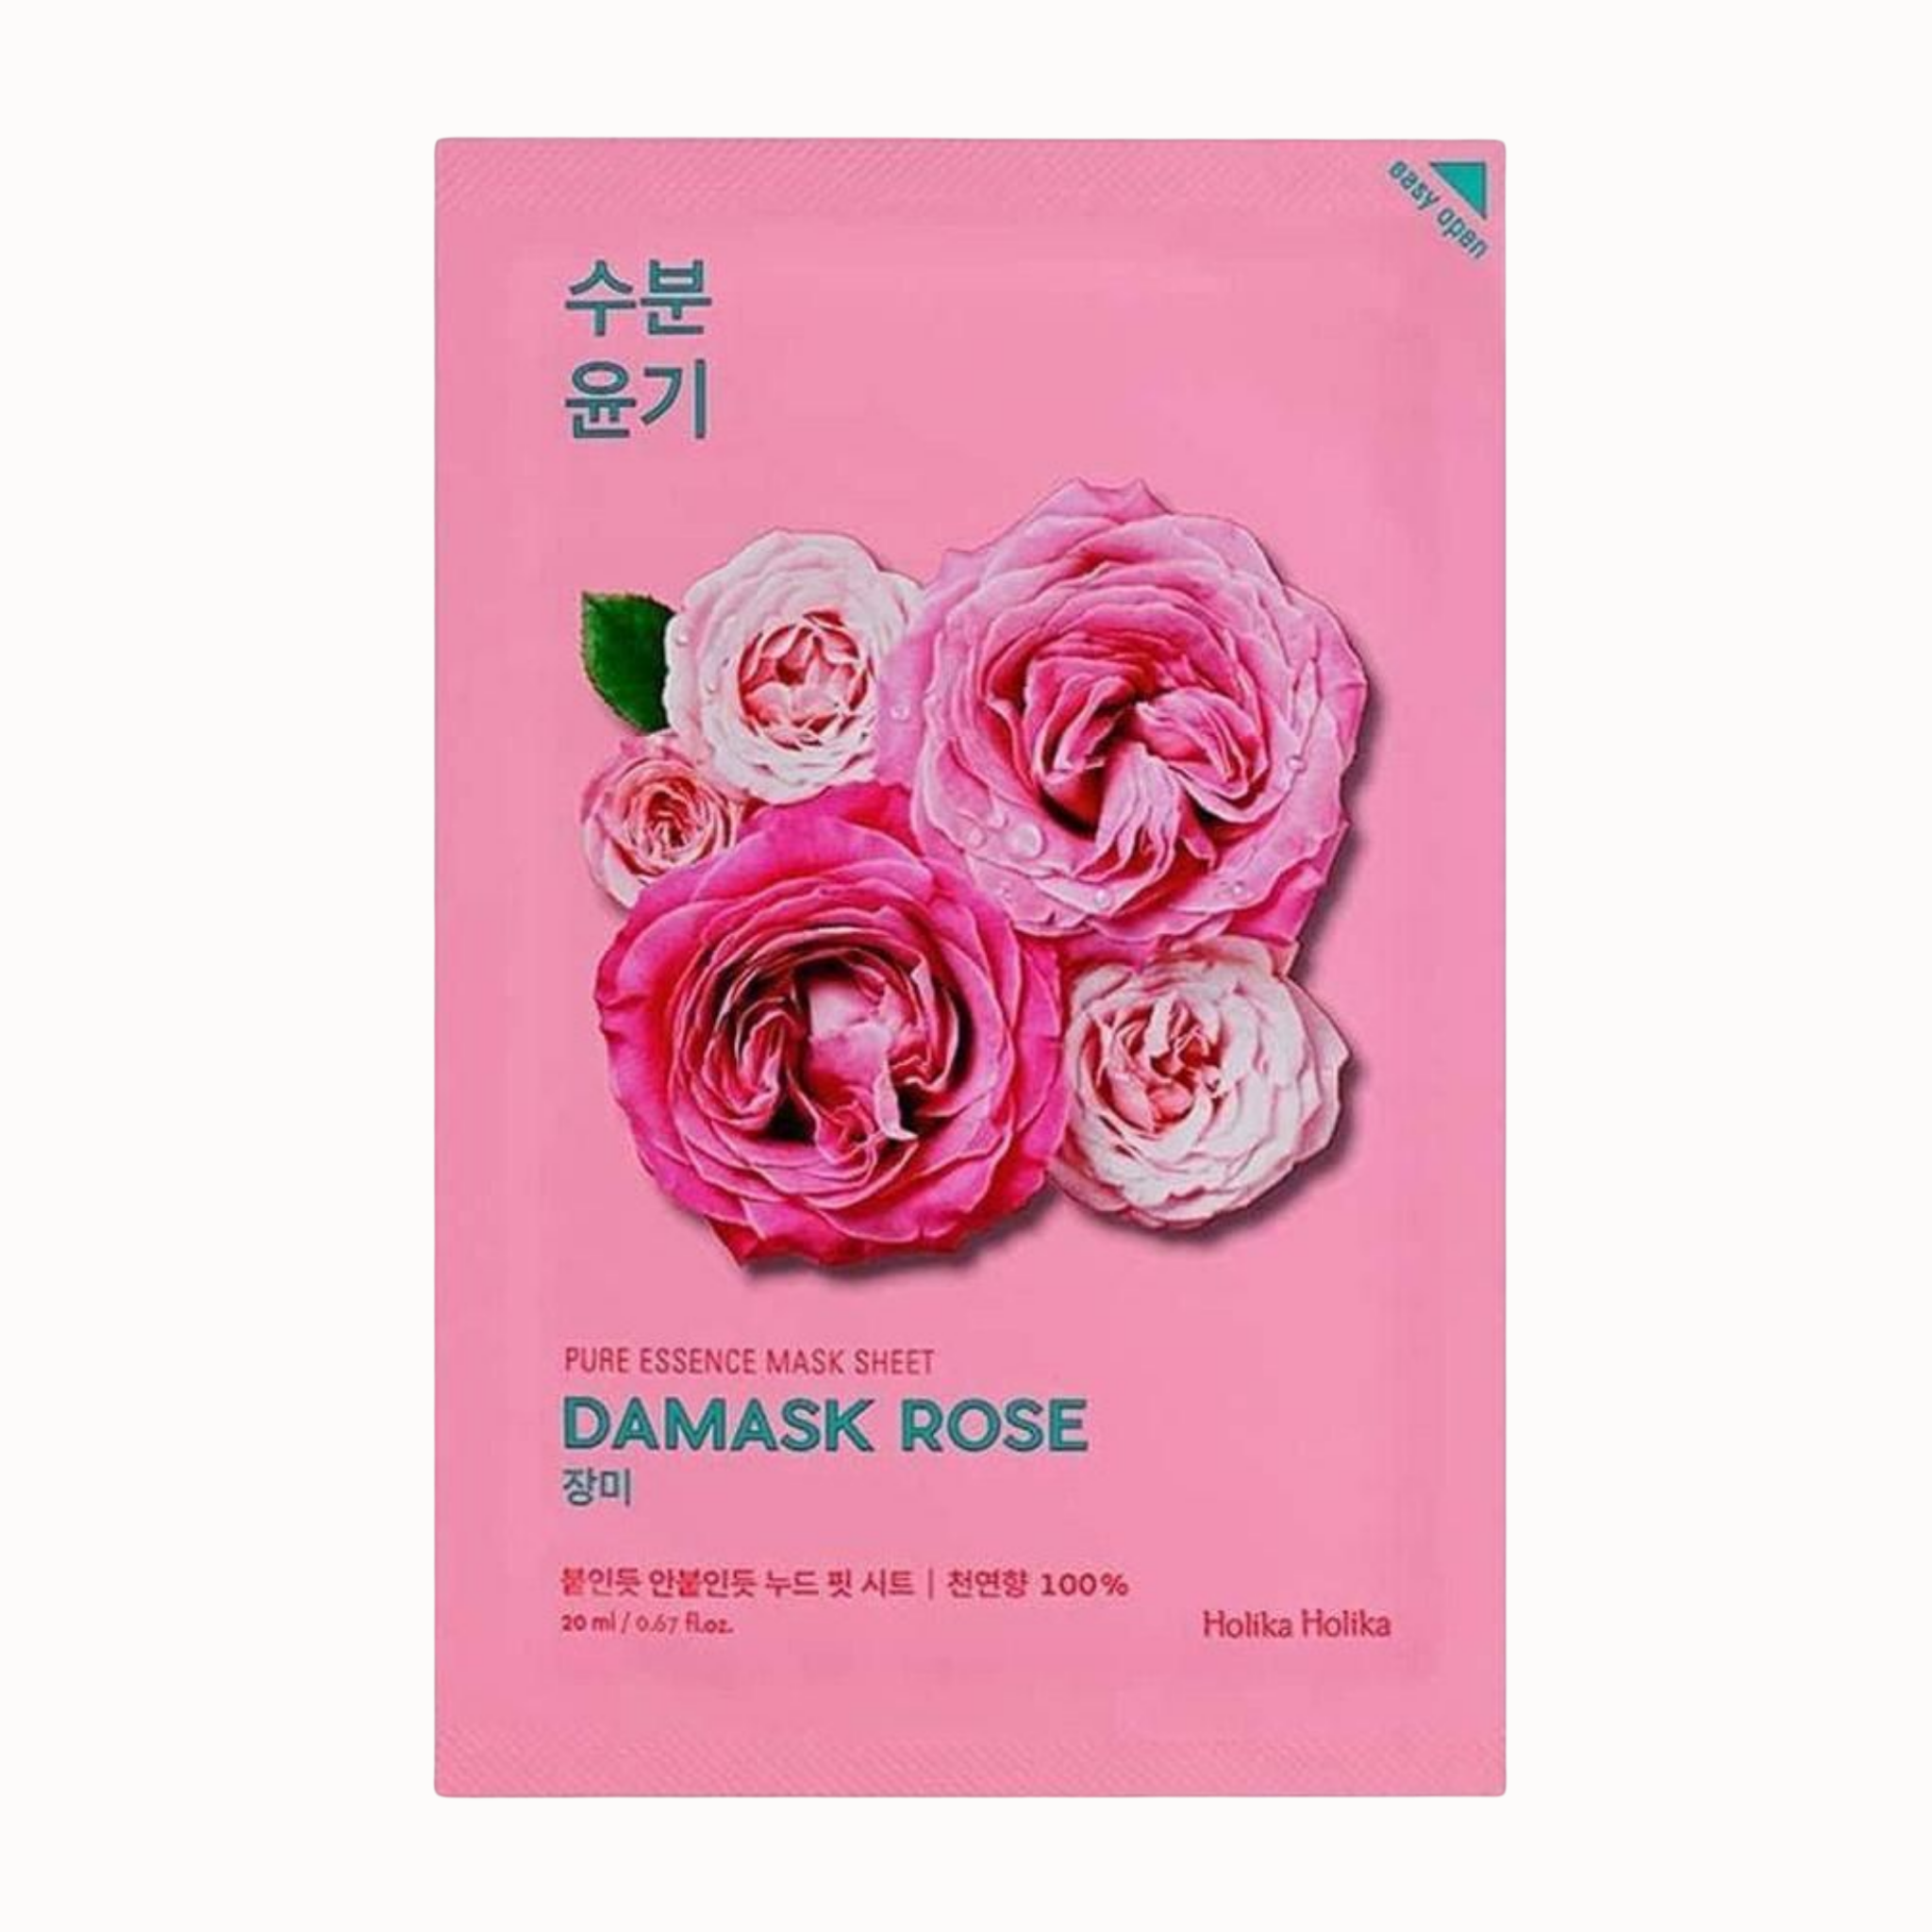 DAMASK ROSE PURE ESSENCE MASK SHEET